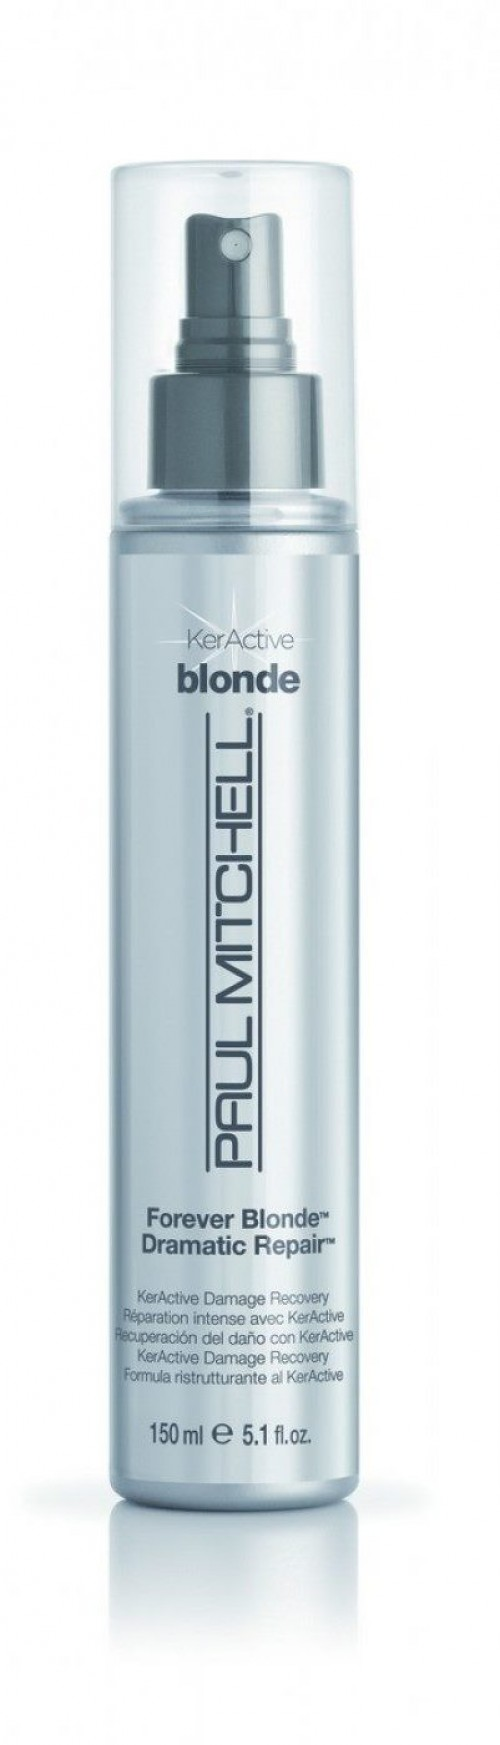 FOREVER BLONDE® DRAMATIC REPAIR